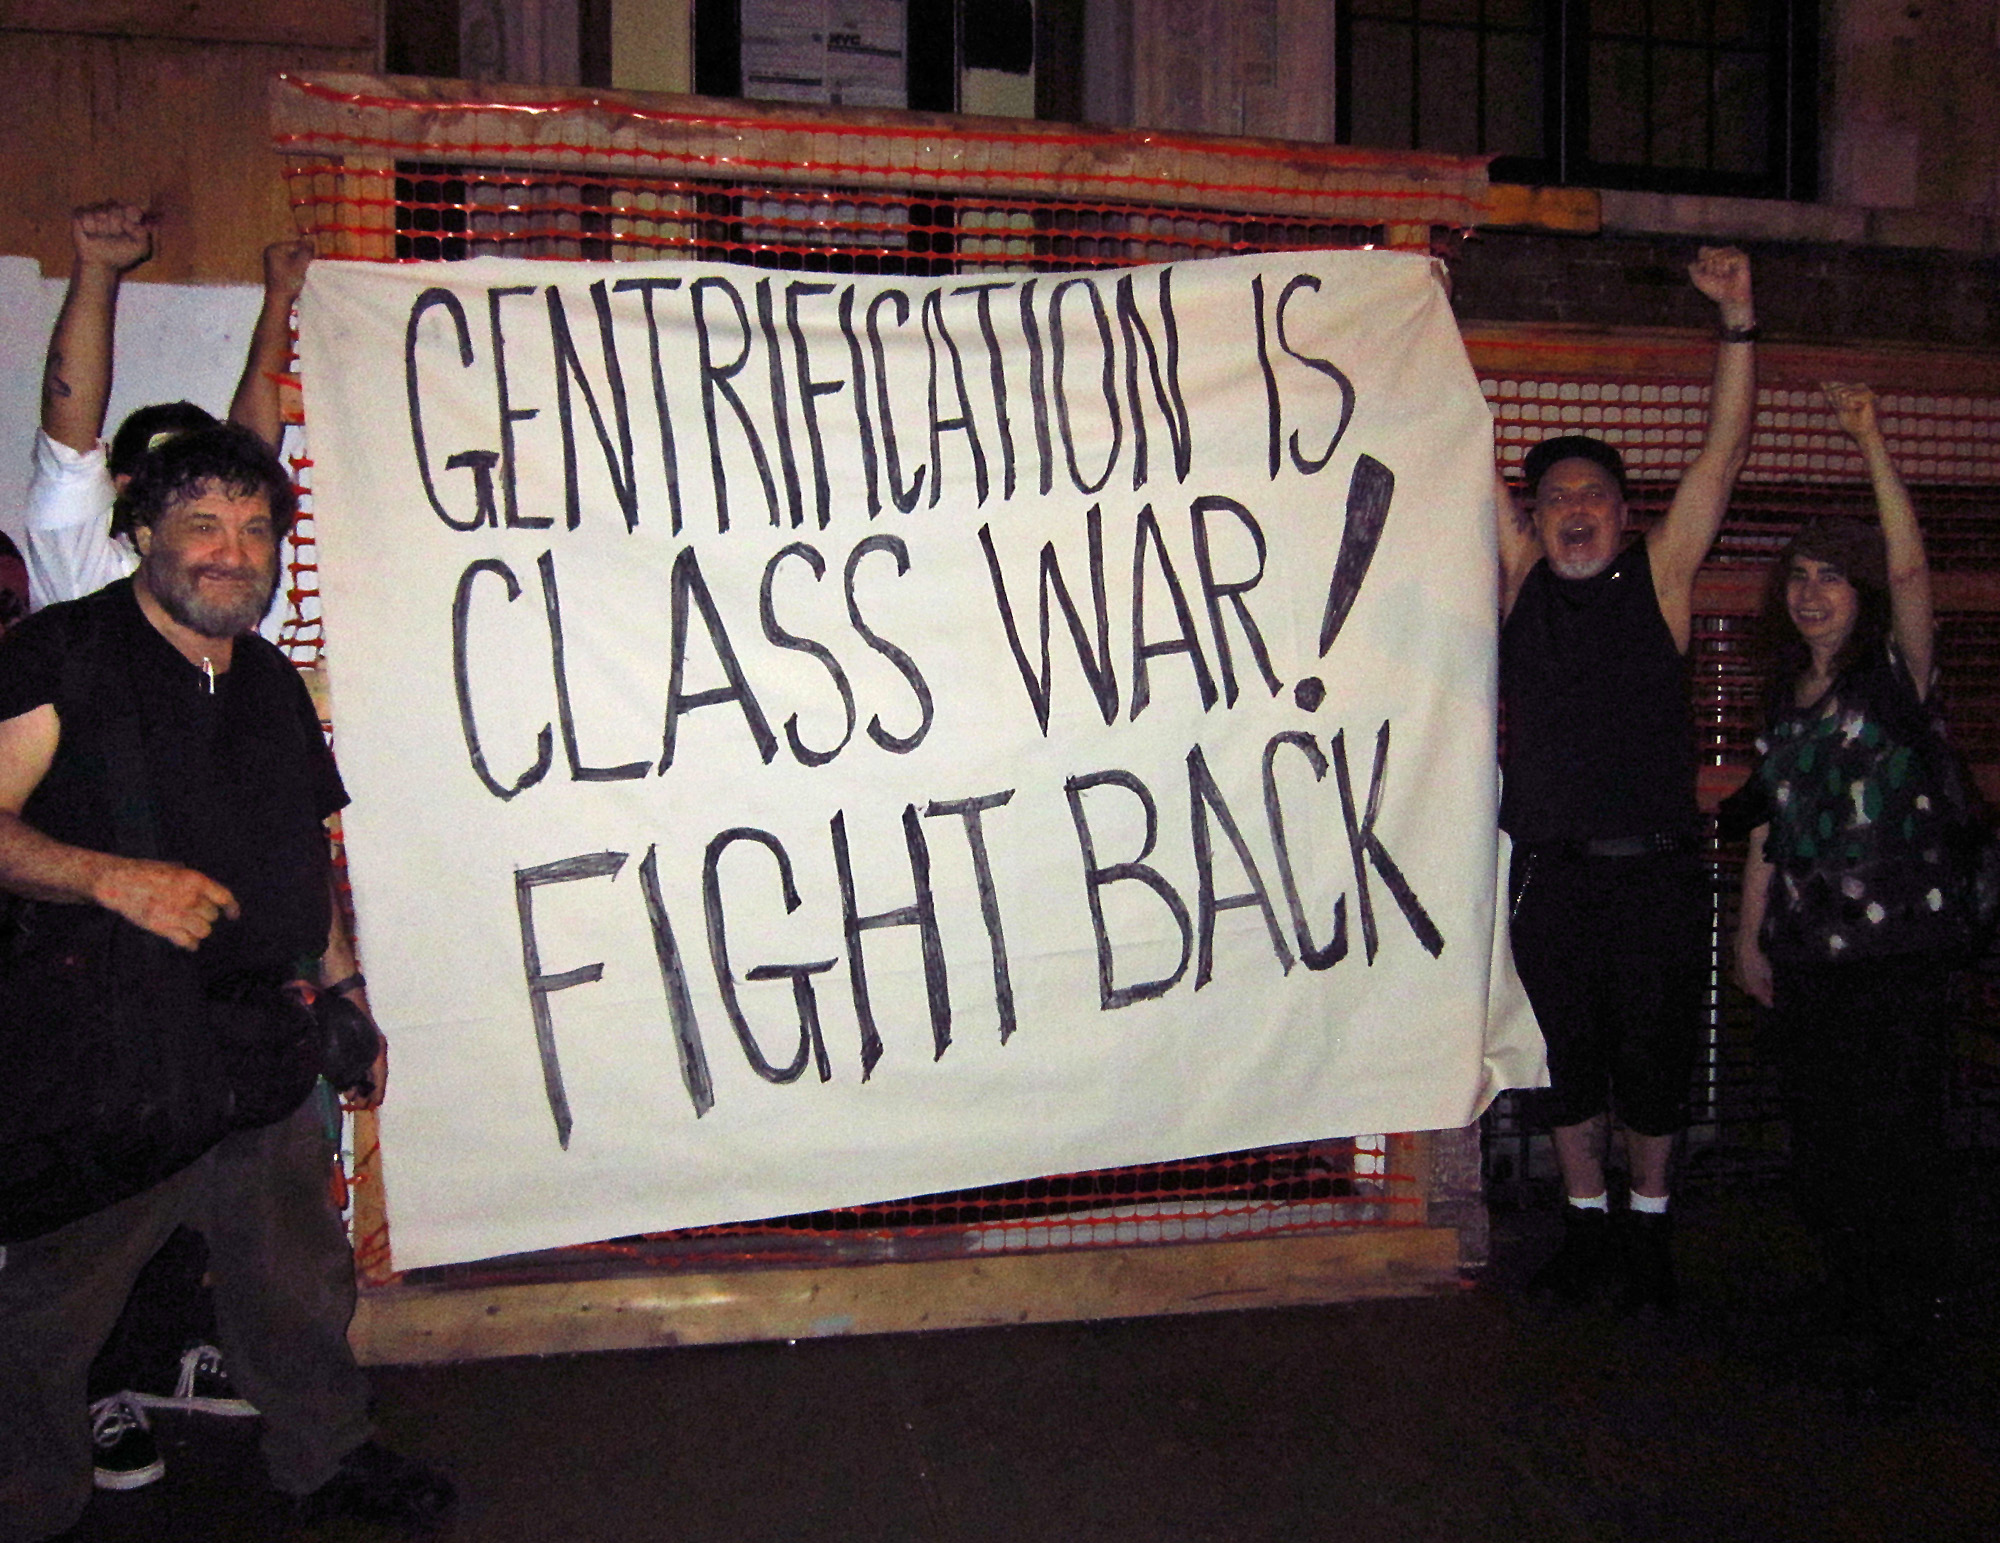 Protest against gentrification